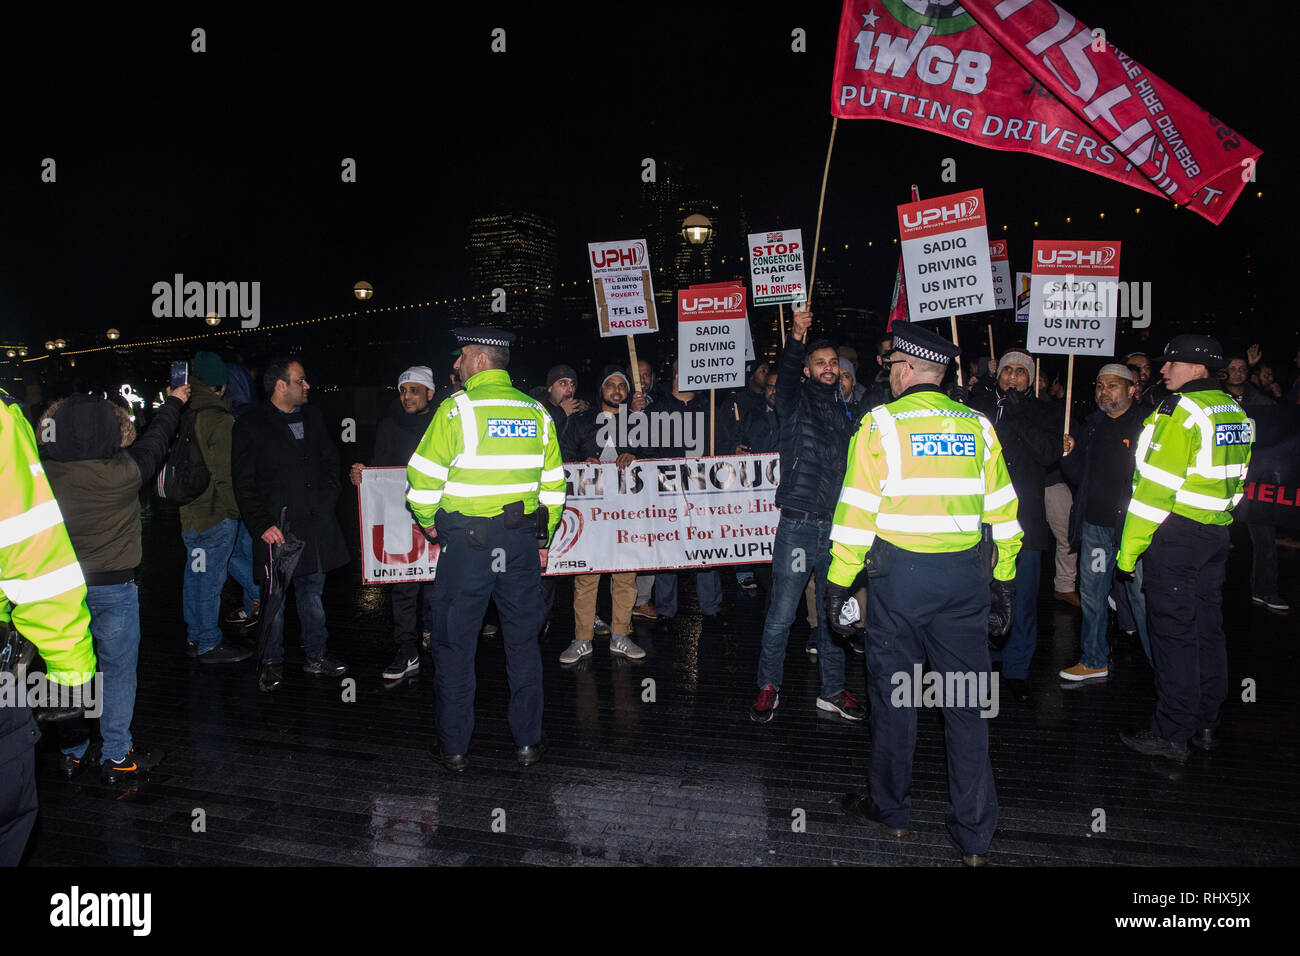 London, UK. 4th February, 2019. Hundreds of minicab drivers march to protest outside City Hall after having left their vehicles blocking London Bridge as part of a protest organised by the United Private Hire Drivers (UPHD) branch of the Independent Workers Union of Great Britain's (IWGB)  following the introduction in December of congestion charges for minicabs. Credit: Mark Kerrison/Alamy Live News - Stock Image